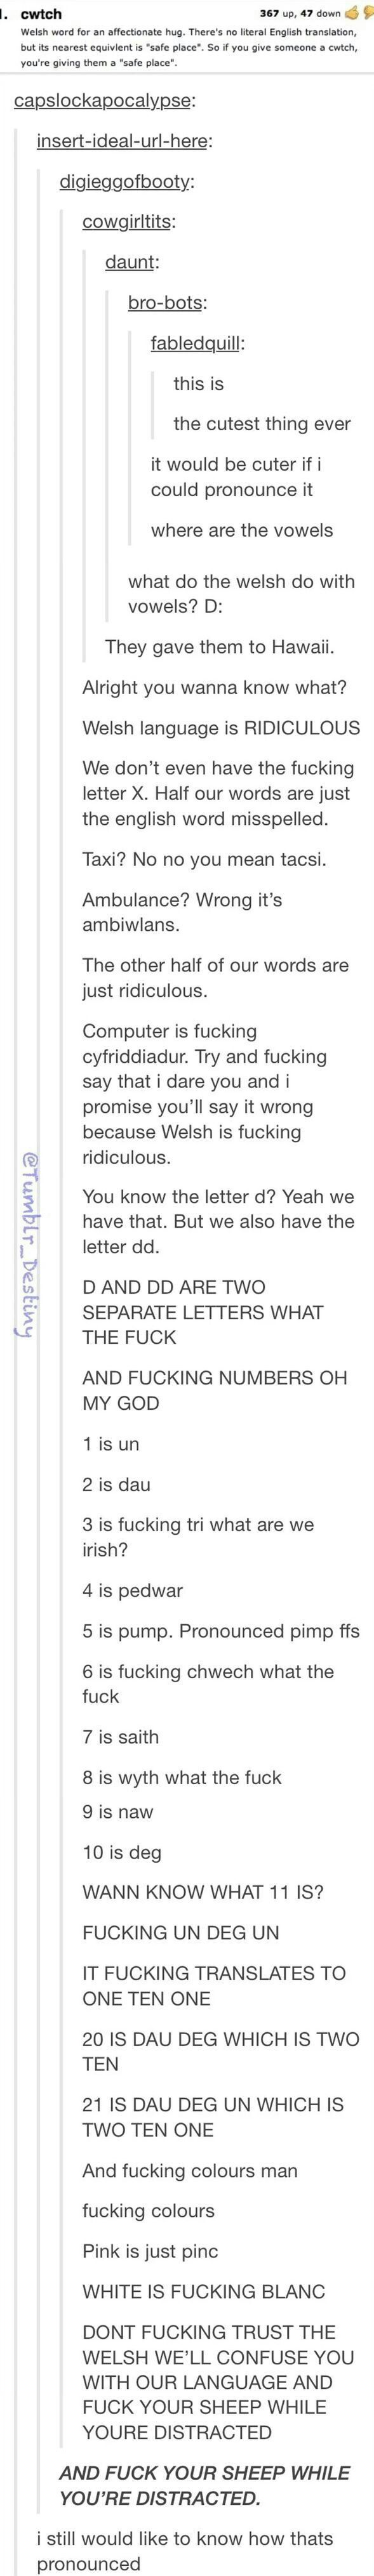 The welsh language xD xD